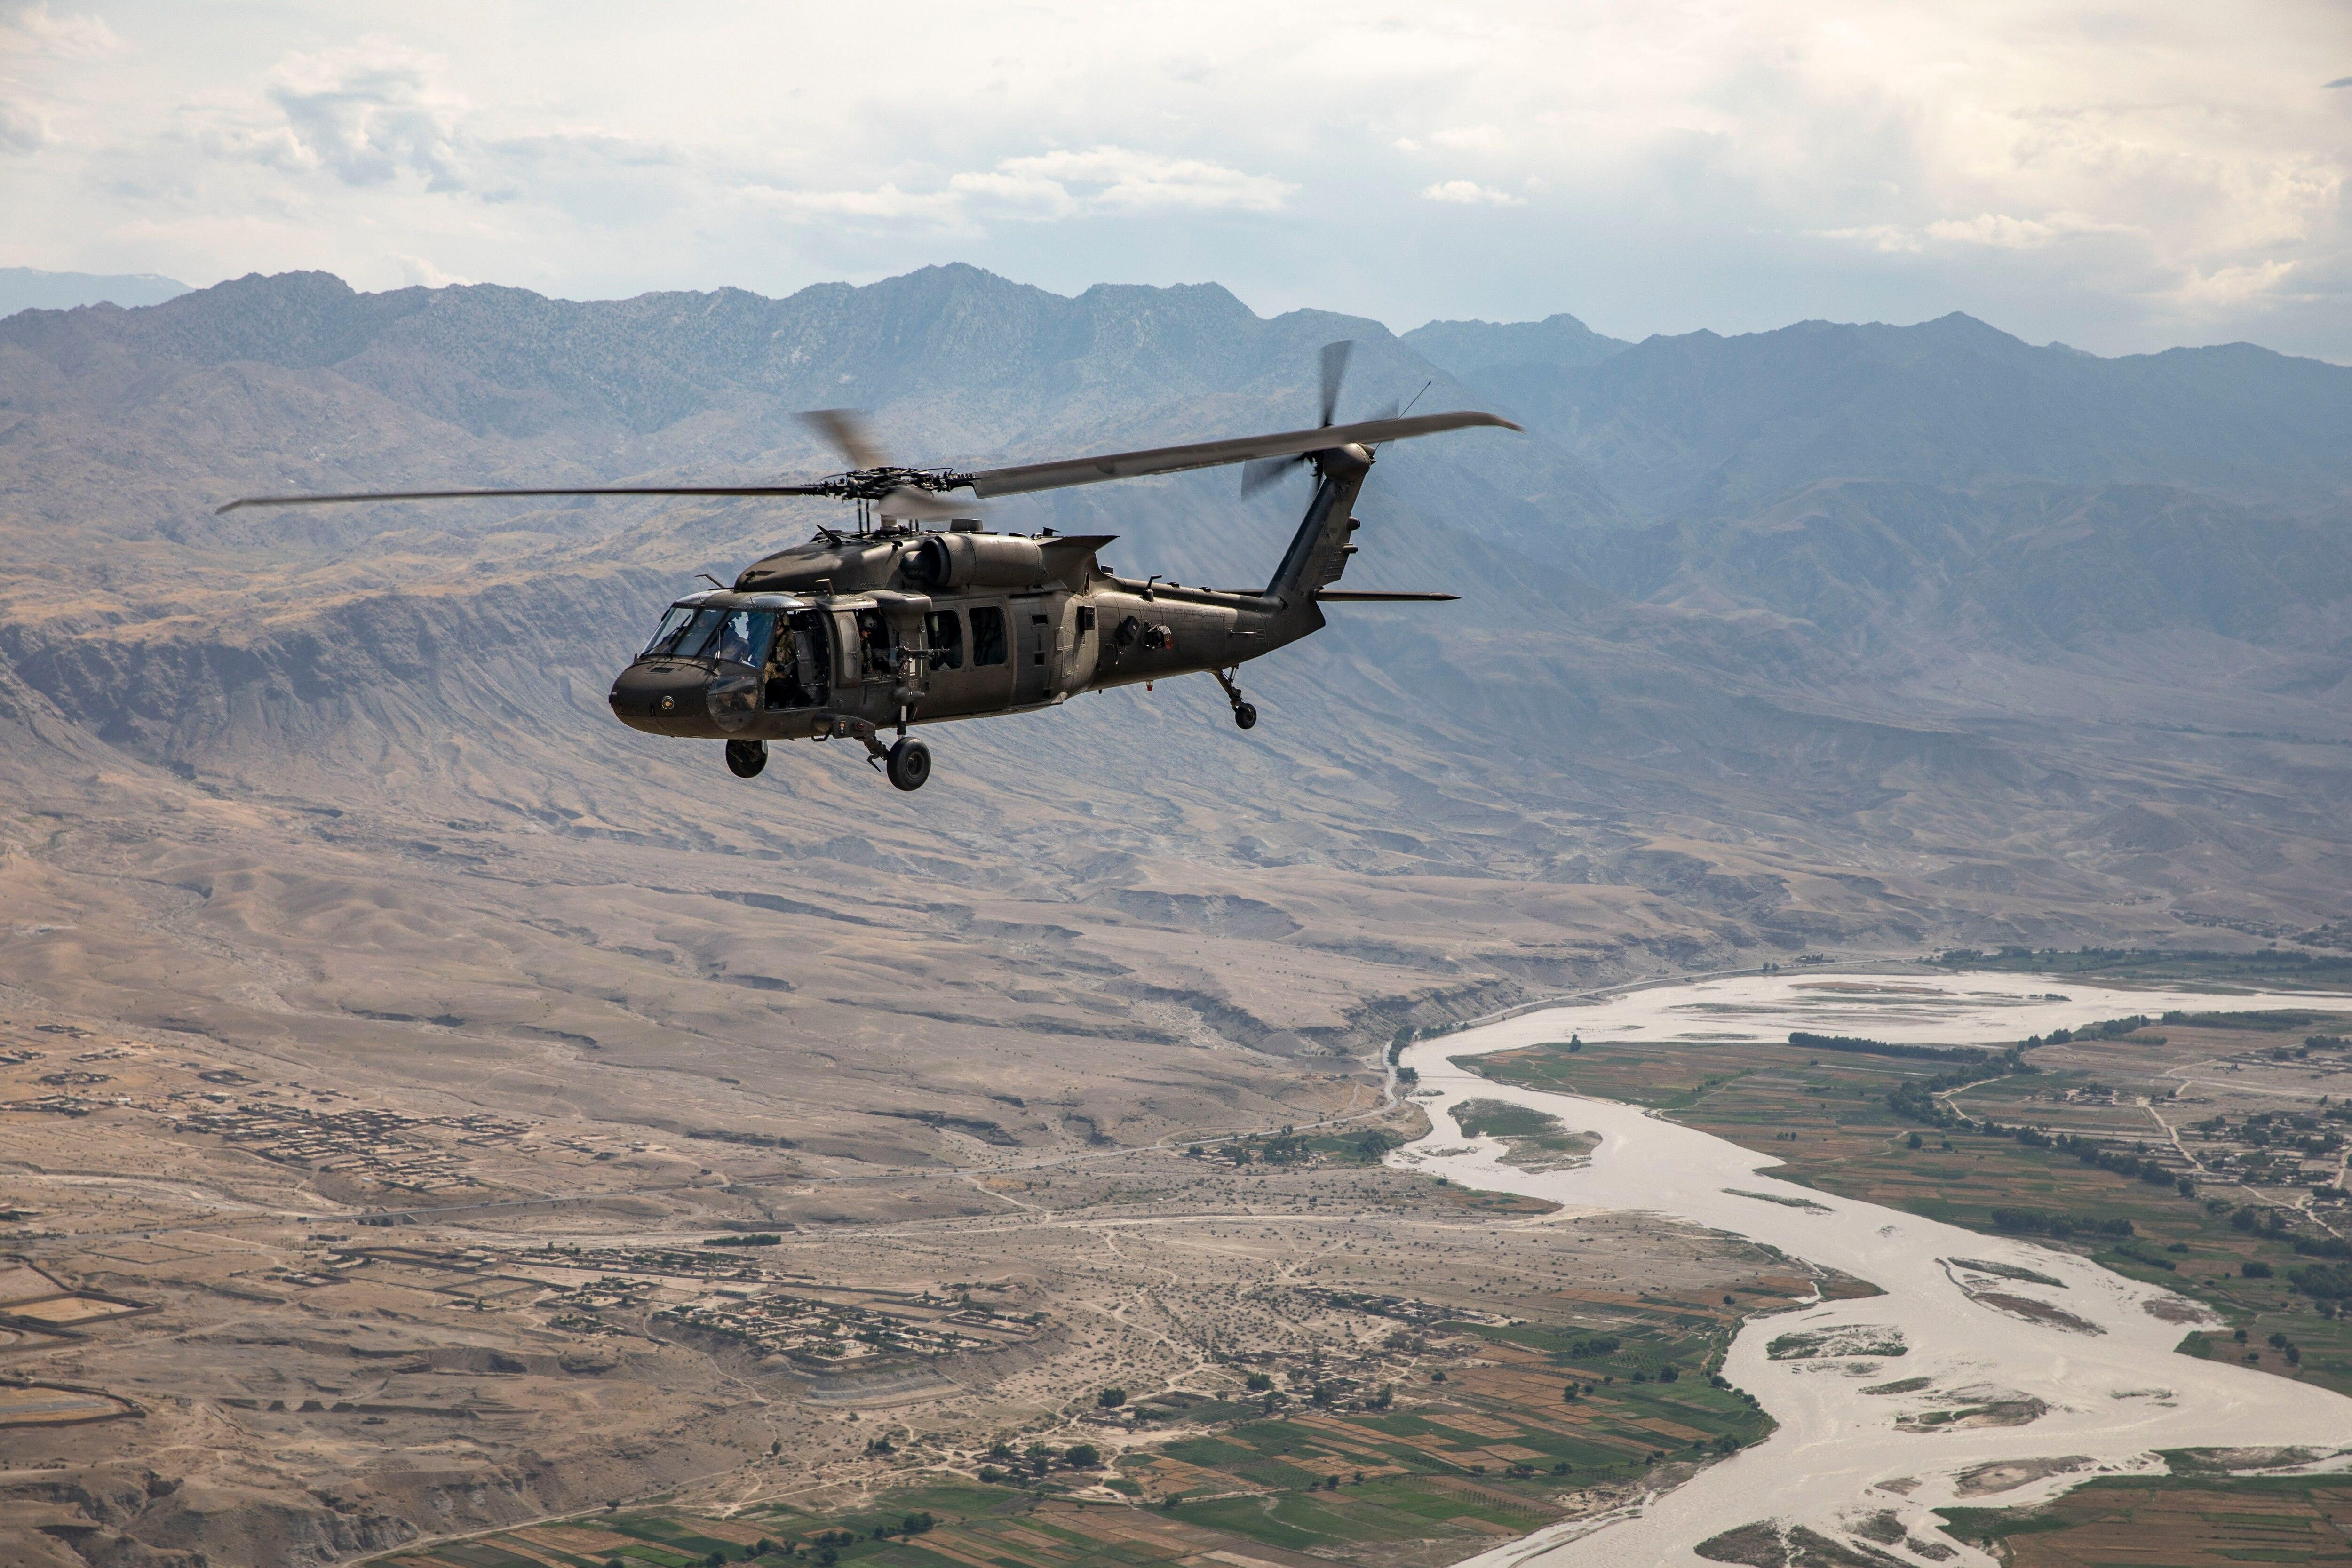 Army validates design for future helicopter engine, remains on track despite COVID